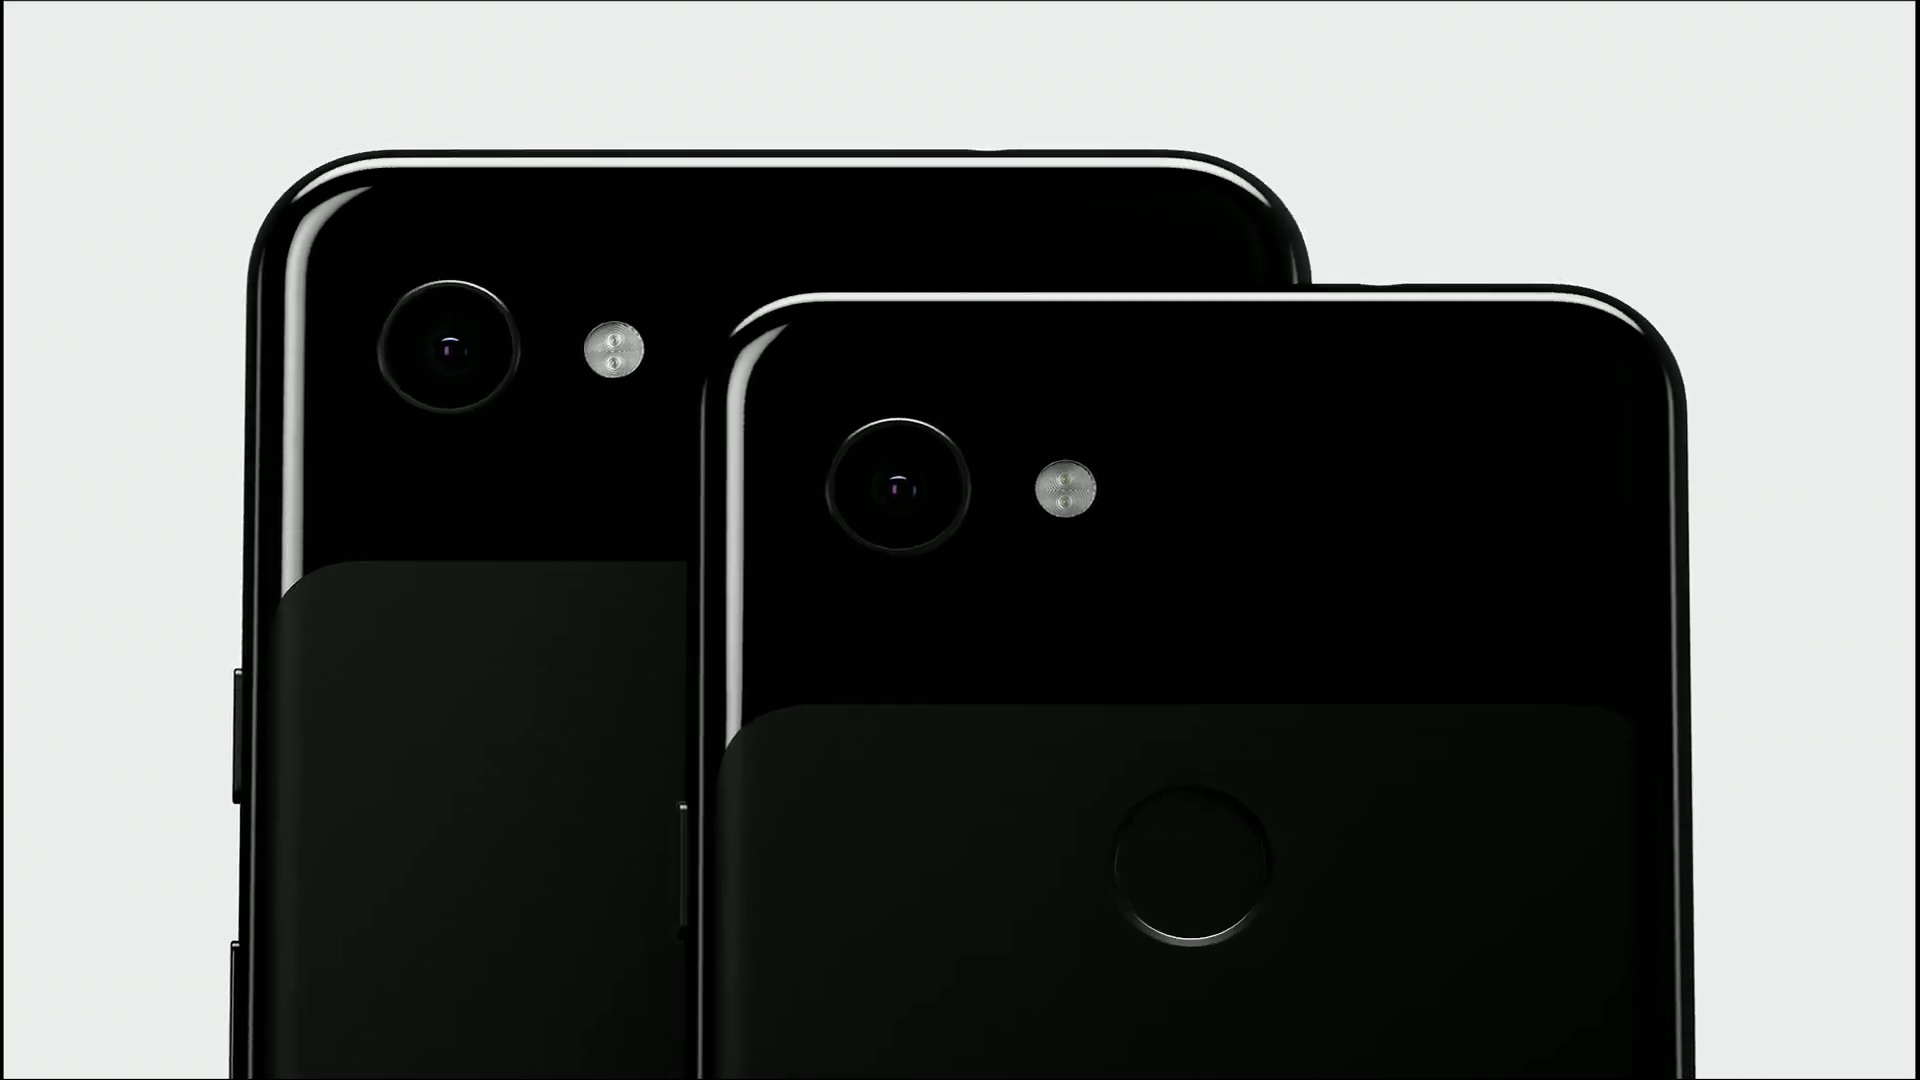 Google releases Google Pixel 3a and Pixel 3a XL for the